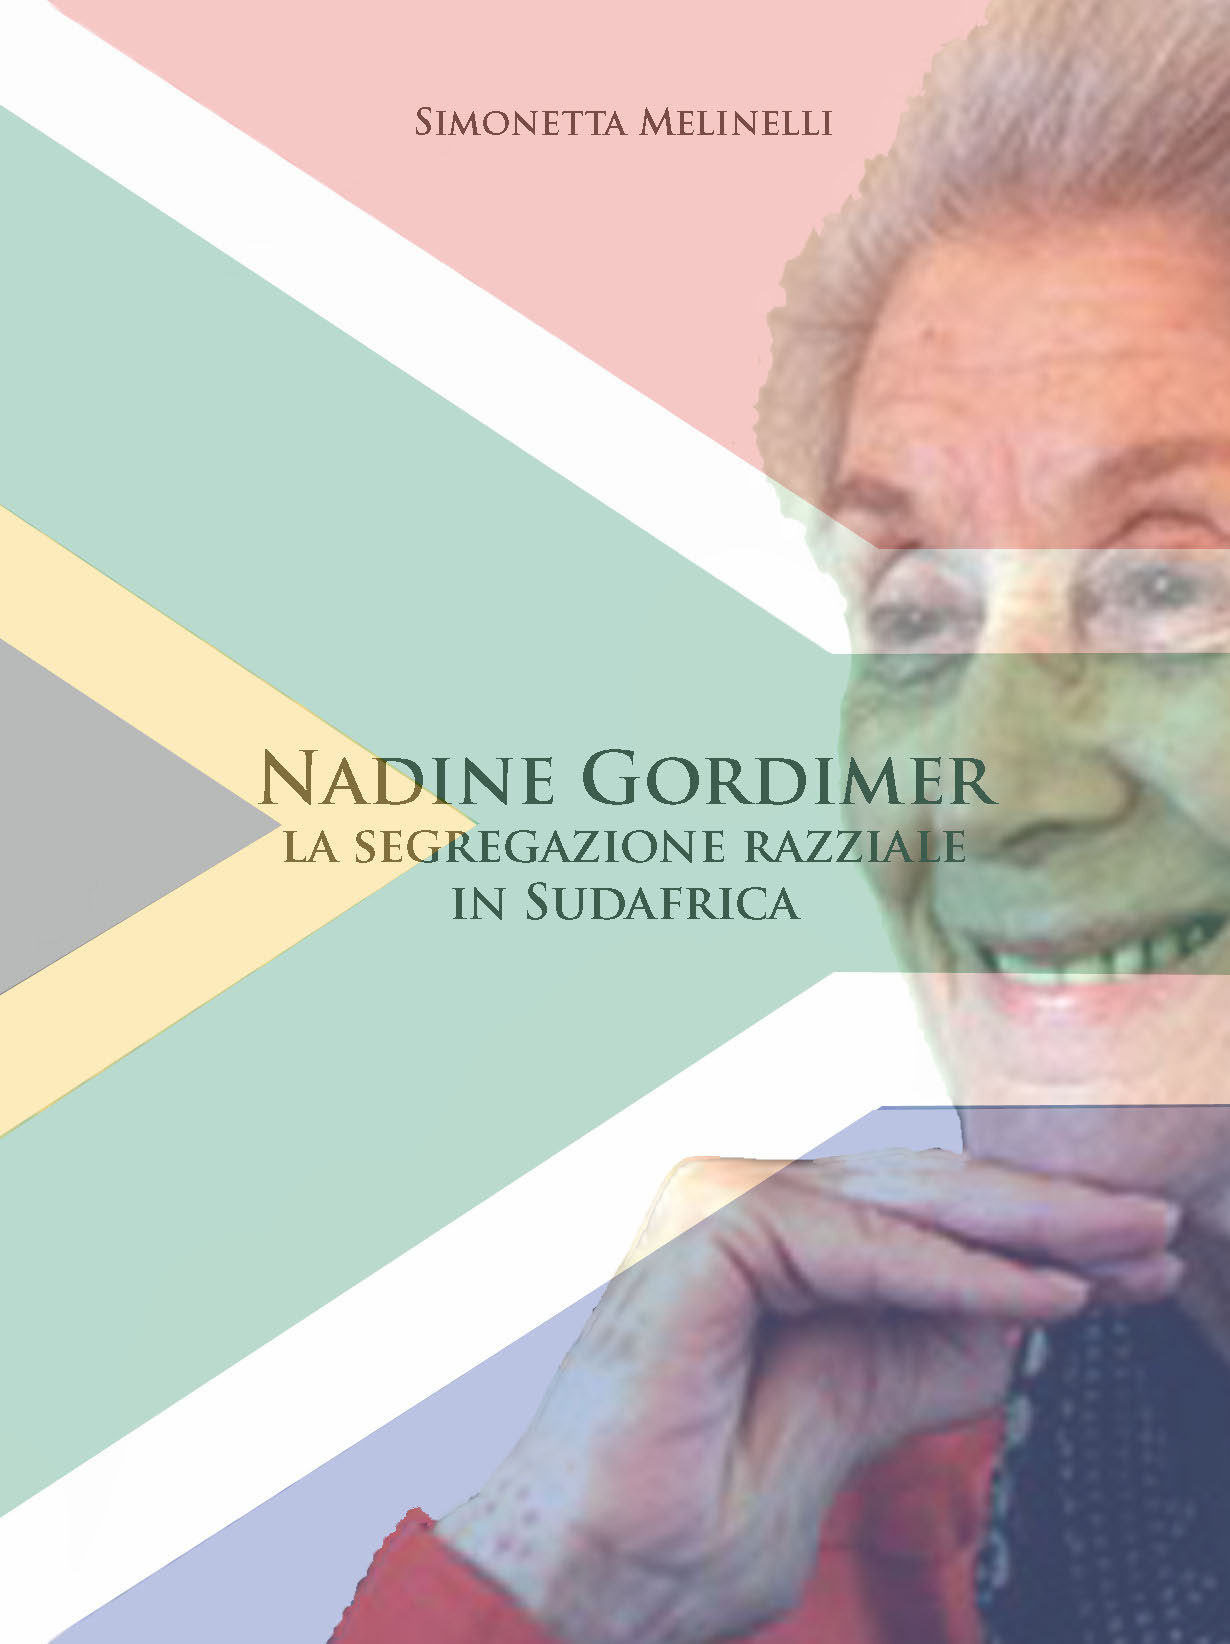 nadine gordimer essay Essays, term papers, book reports, research papers on literature: toni morrison free papers and essays on nadine gordimer we provide free model essays on literature: toni morrison, nadine gordimer reports, and term paper samples related to nadine gordimer.